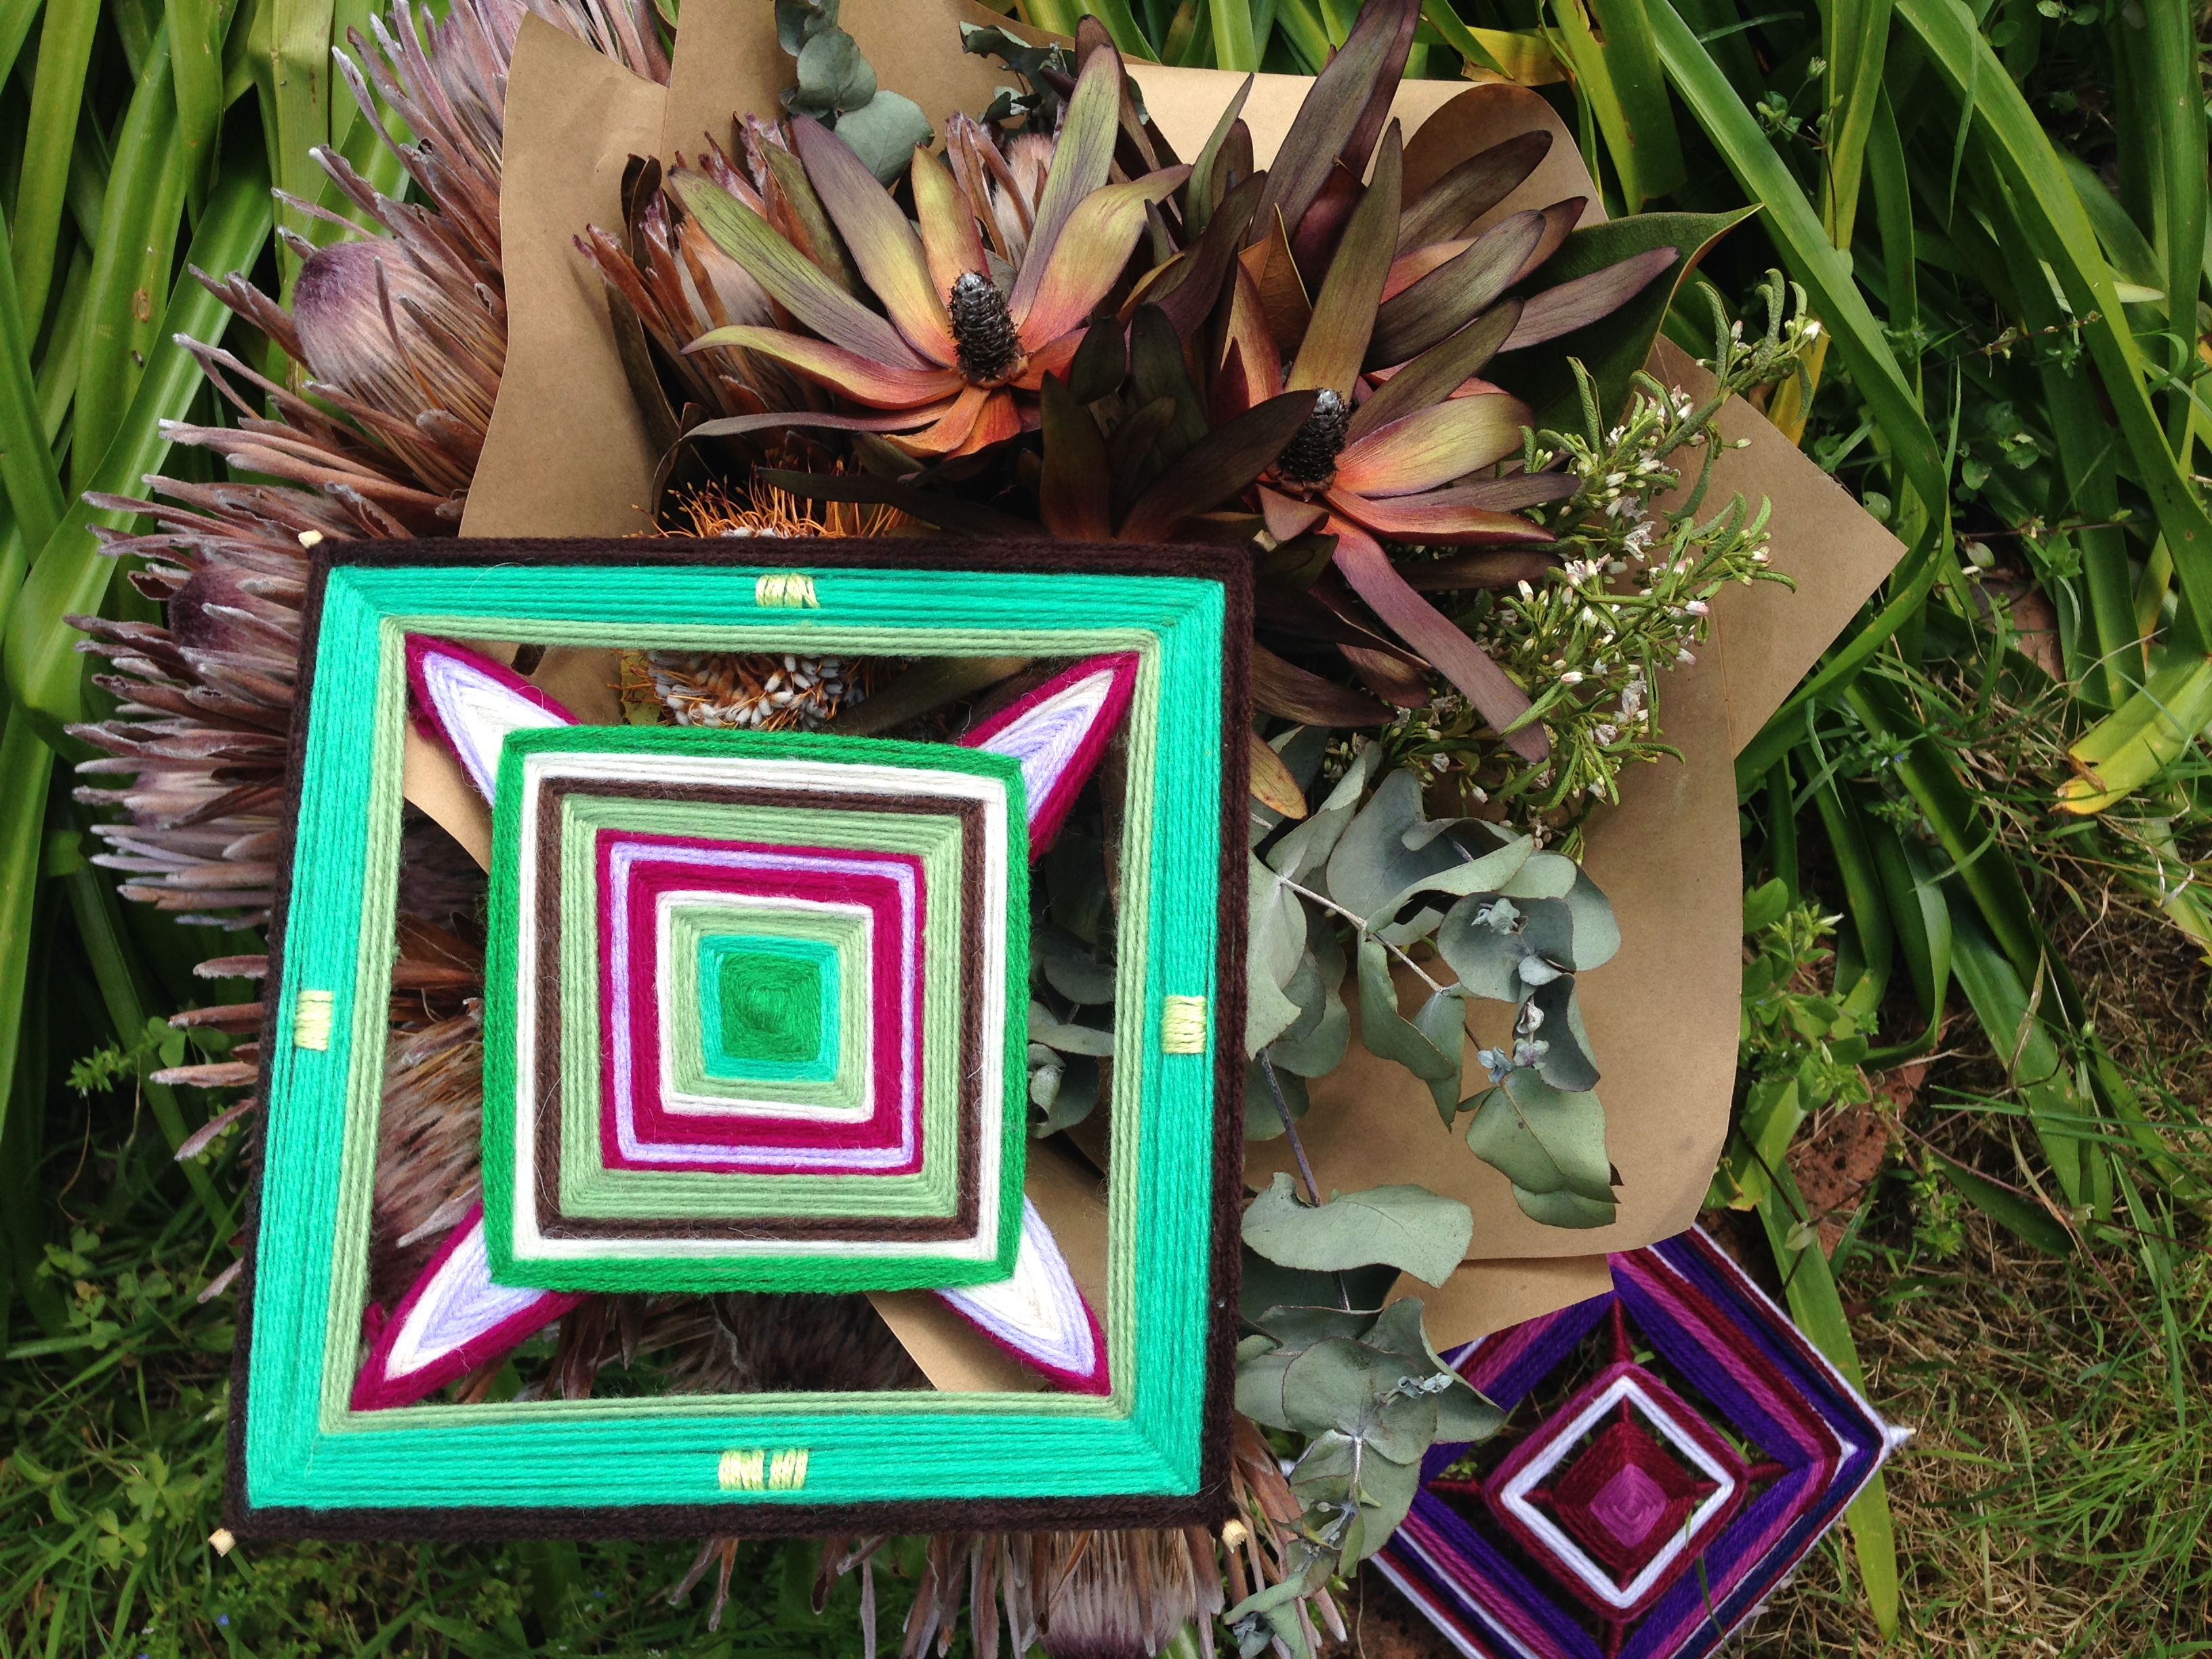 The relationship between Mandalas & woven God's eye (Ojo de Dios)?